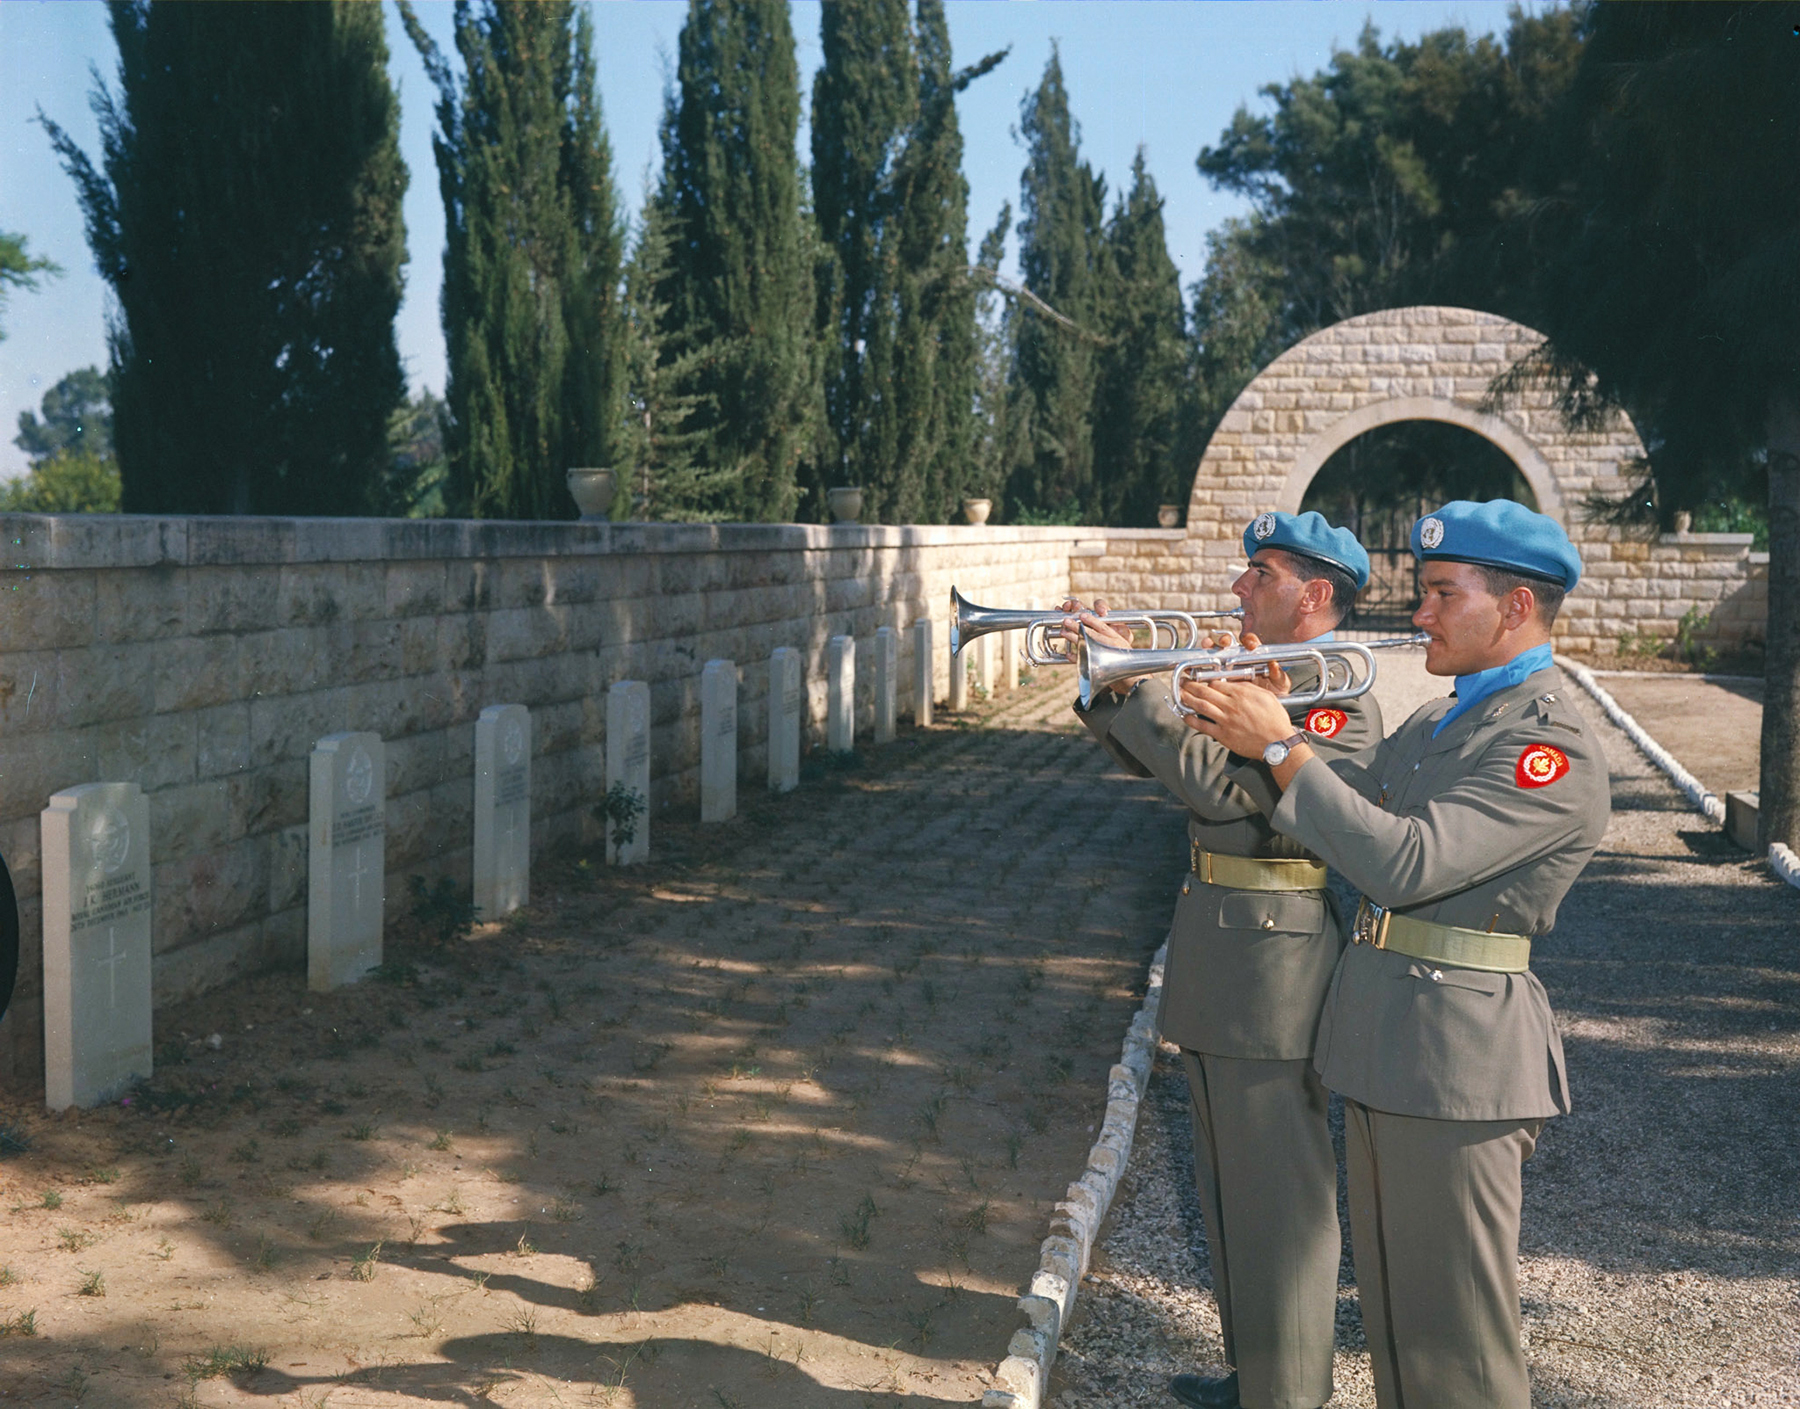 Trumpeters sound Last Post during a November 11, 1964, Remembrance Day ceremony in the Canadian Section of the British War Cemetery in Gaza, Palestine. PHOTO: DND Archives, ZK-2040-1